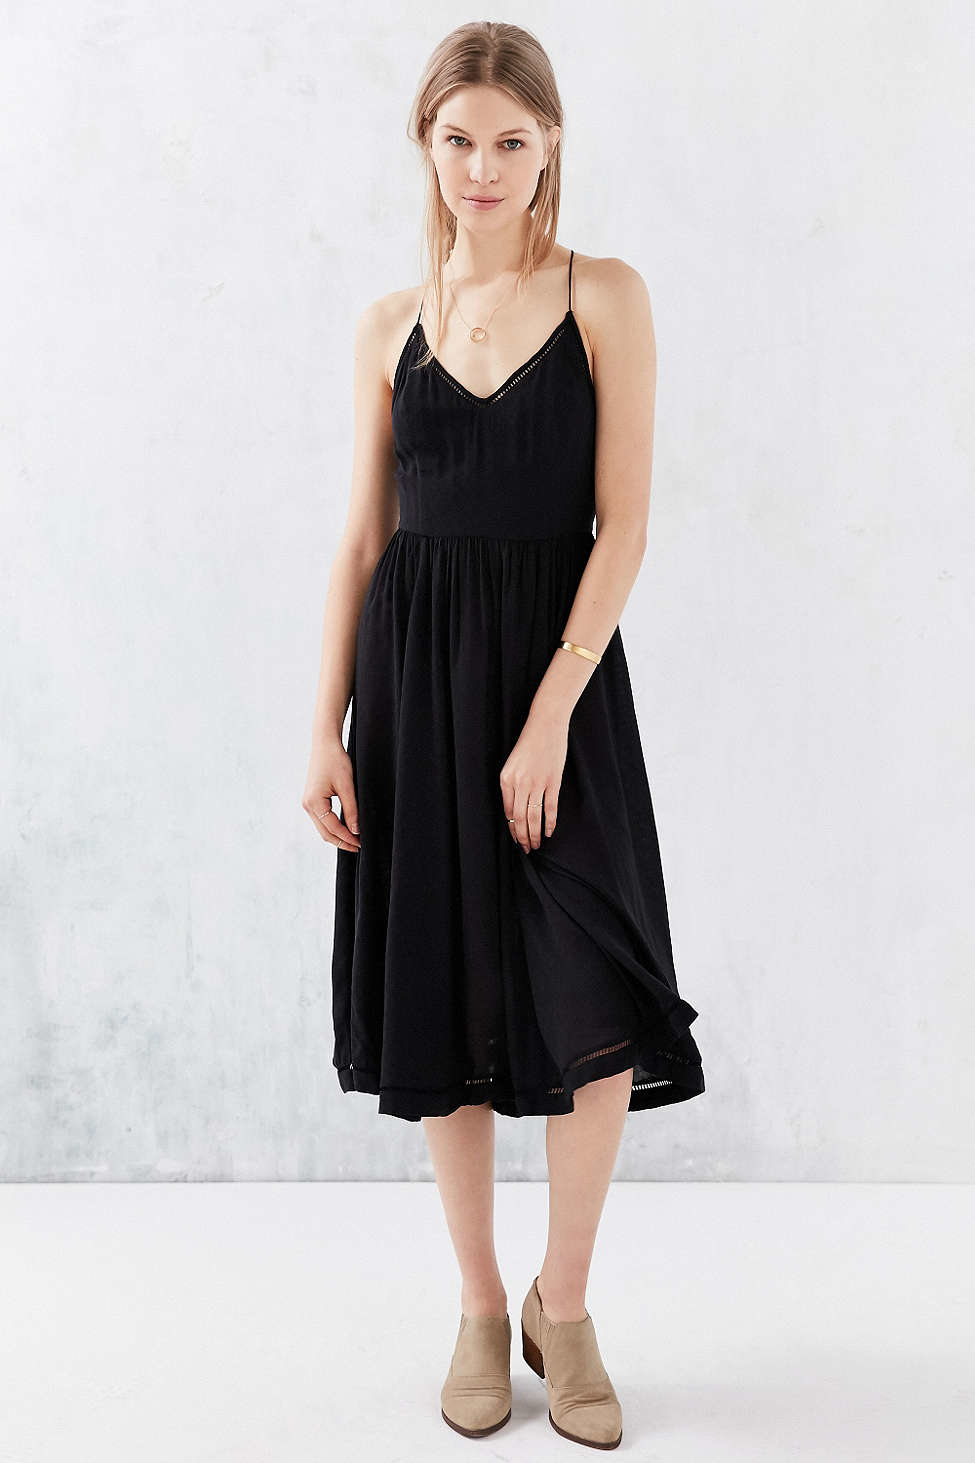 a776fcda2d09 Gallery. Previously sold at  Urban Outfitters · Women s Black Lace Cocktail  Dresses Women s Blue ...